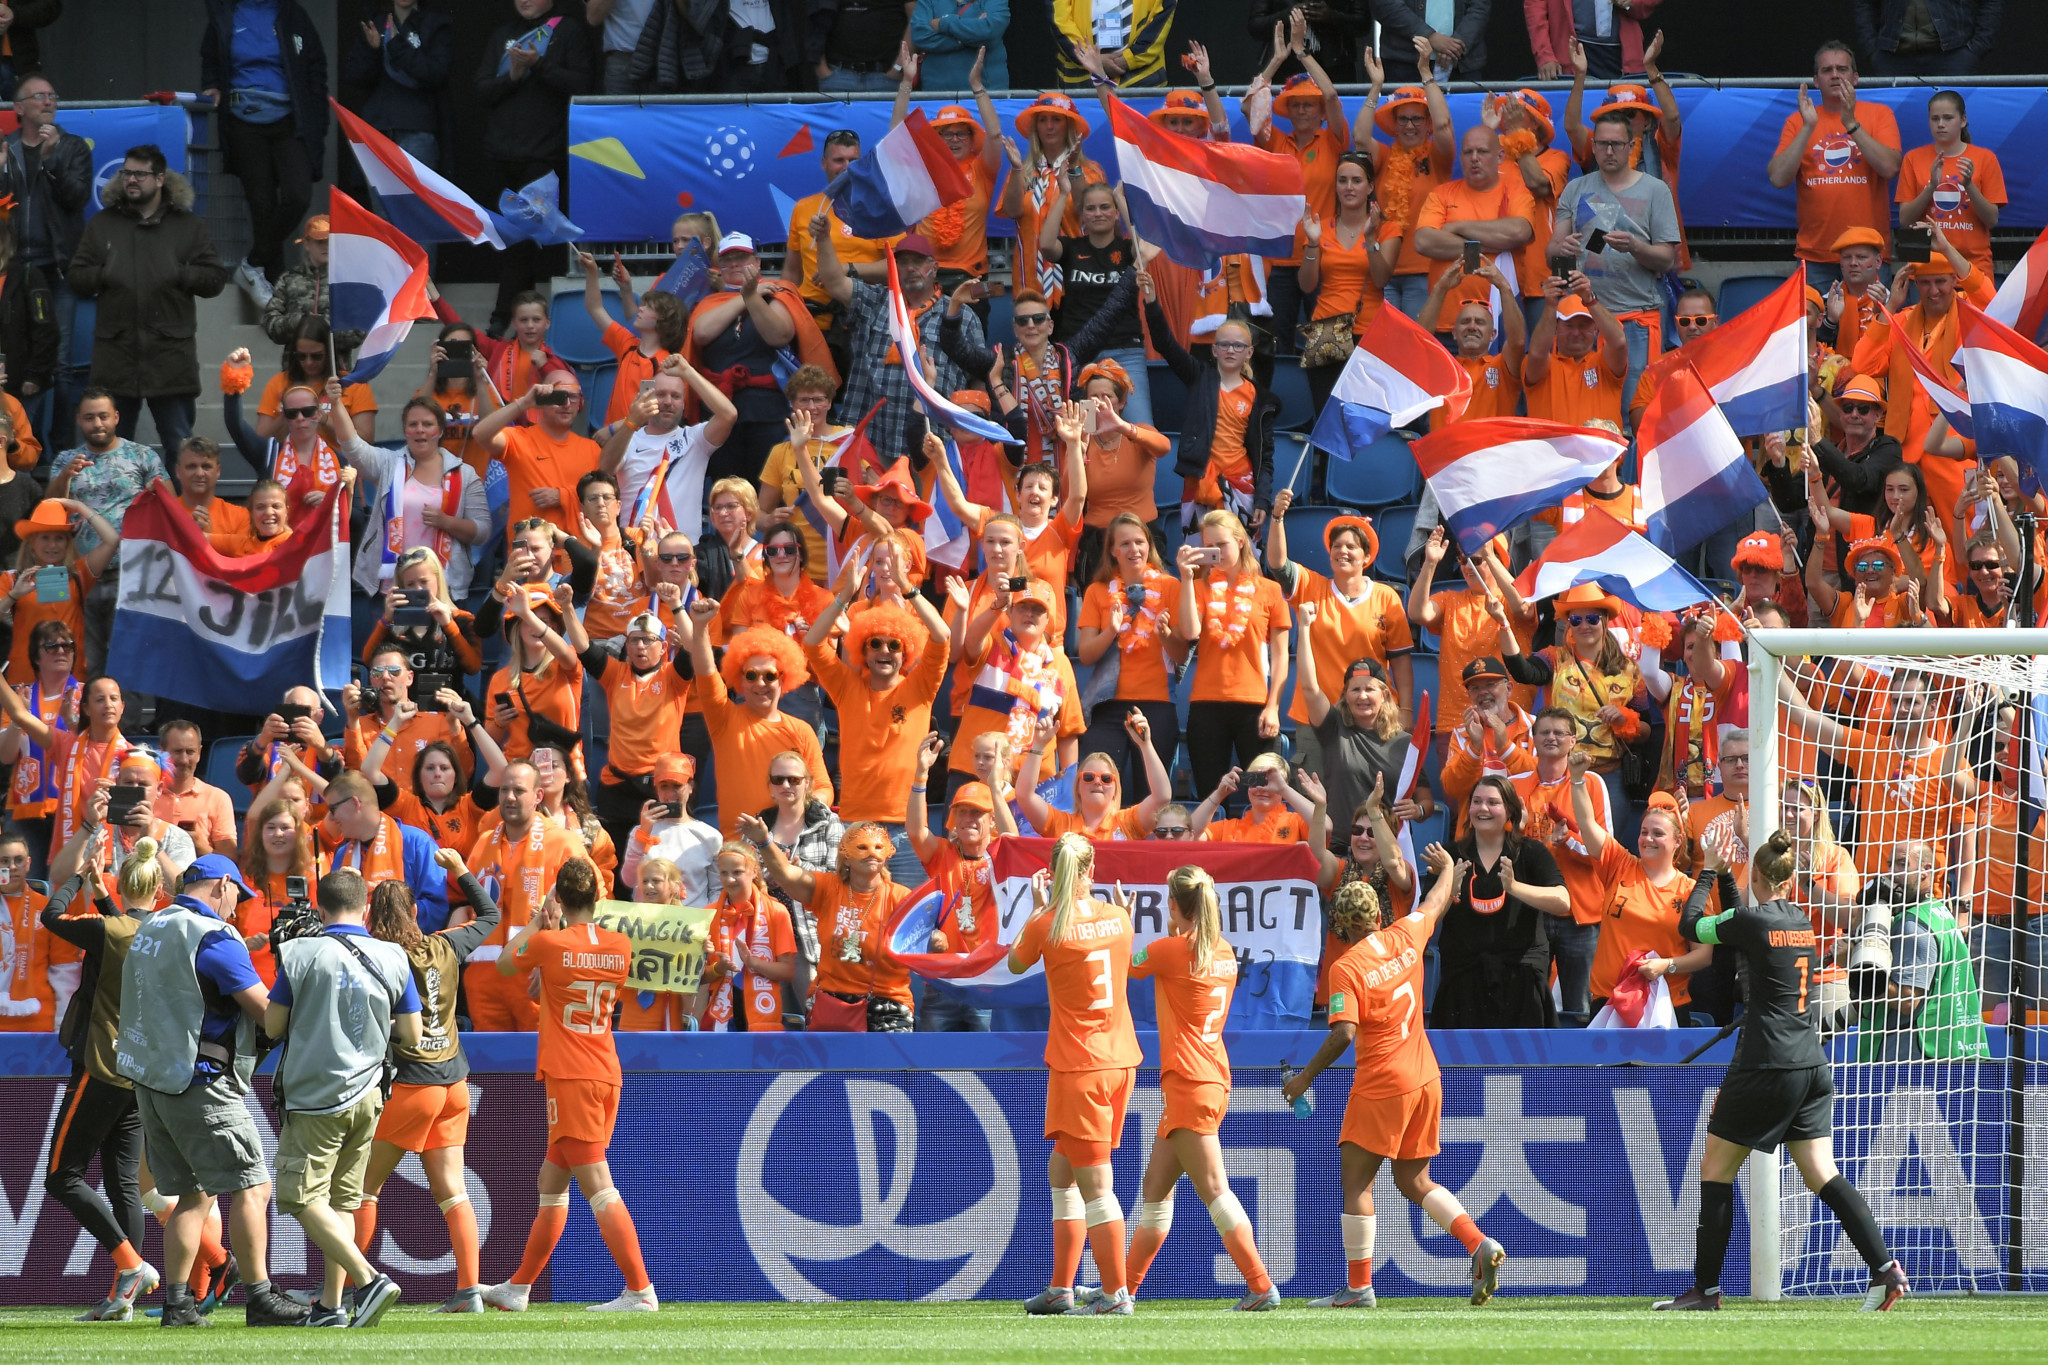 The Netherlands were bolstered by the high level of Dutch support in the crowd ©Getty Images